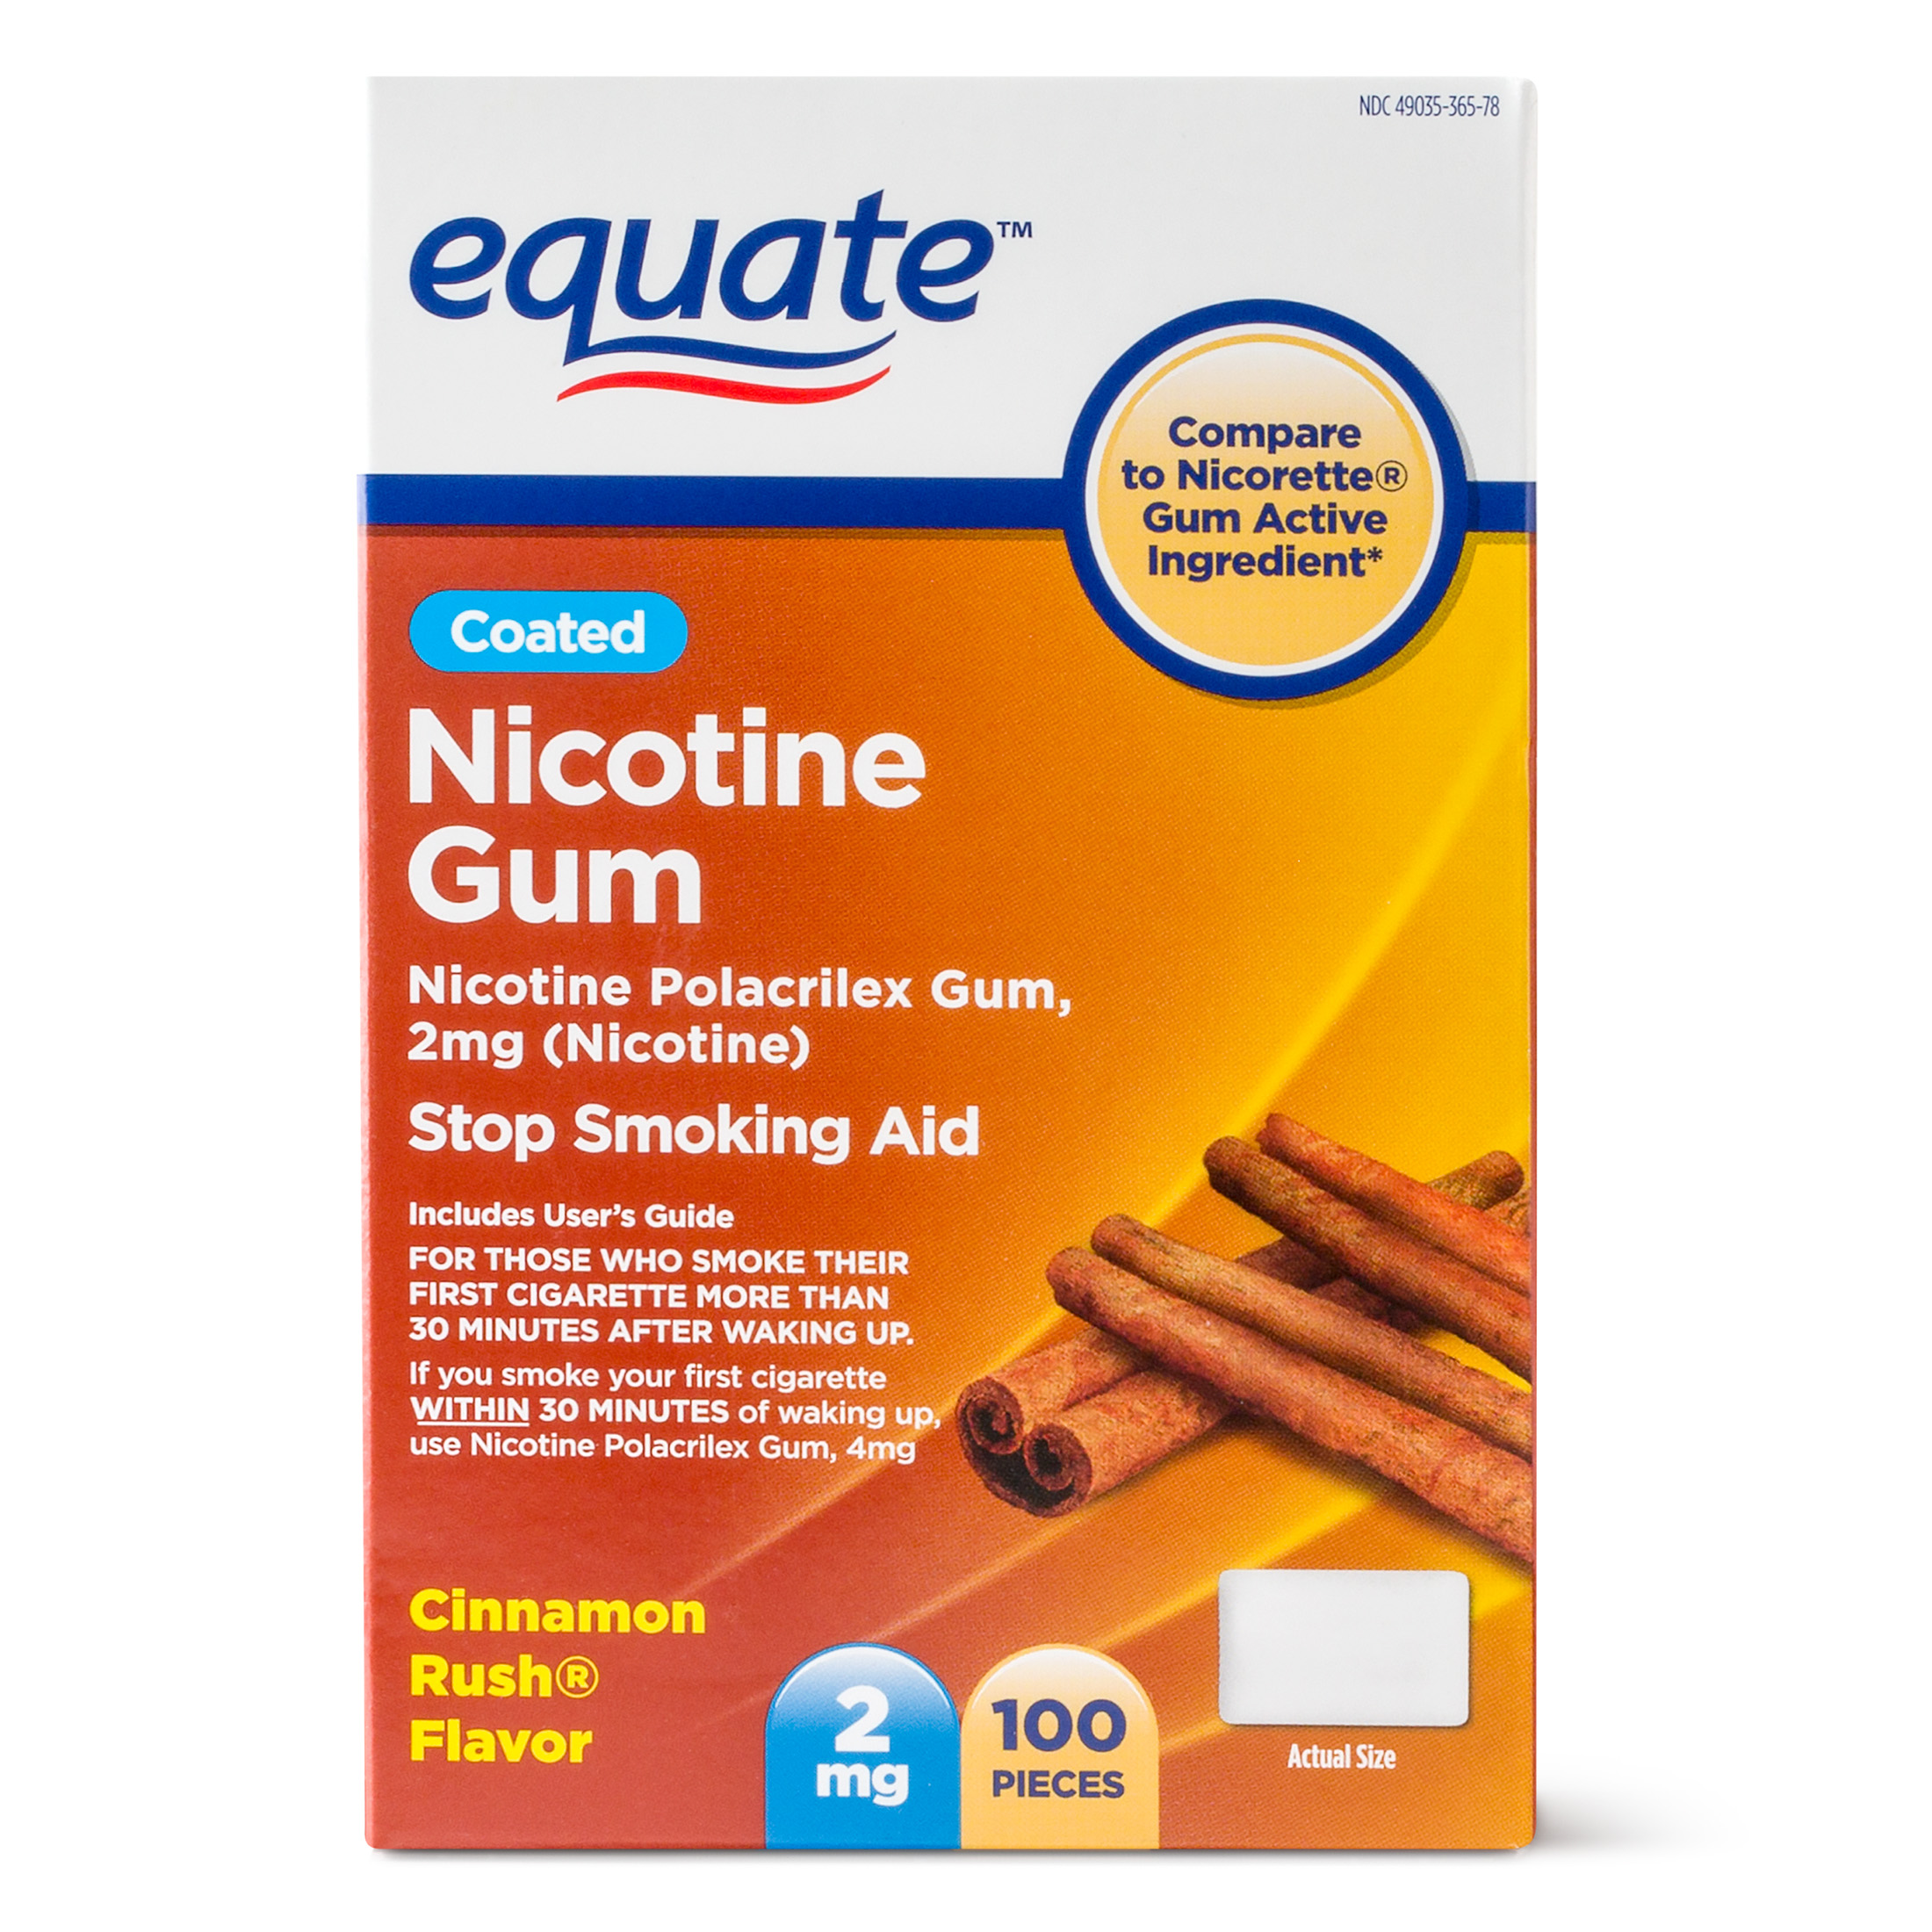 Equate Coated Nicotine Gum Stop Smoking Aid Cinnamon Rush Flavor, 2 mg, 100 Ct